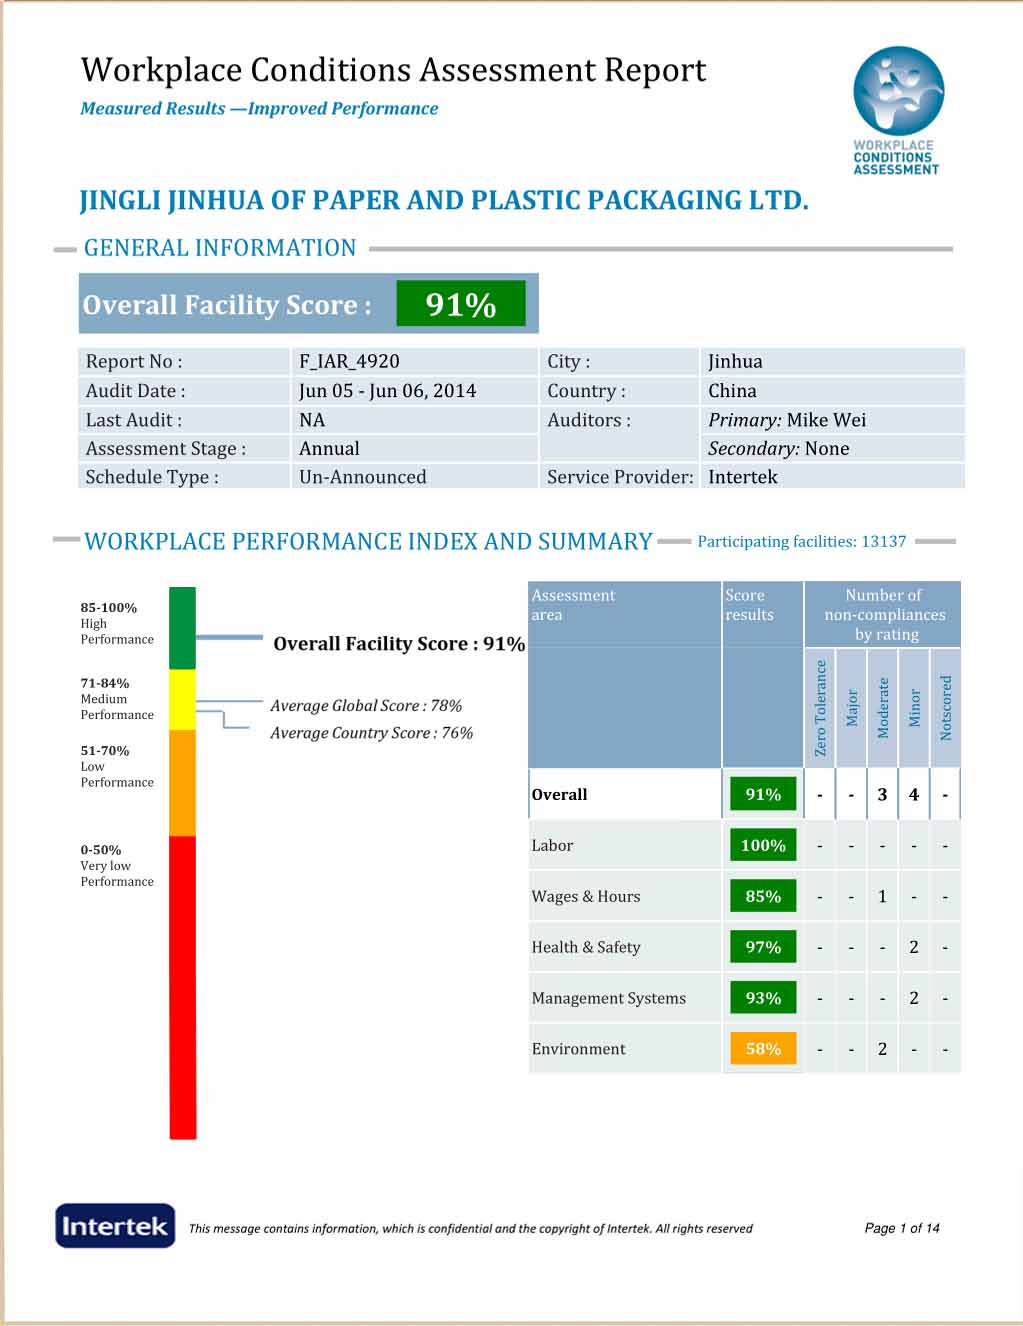 Working Conditions Assessment Report of JINGLI PAPER BAG